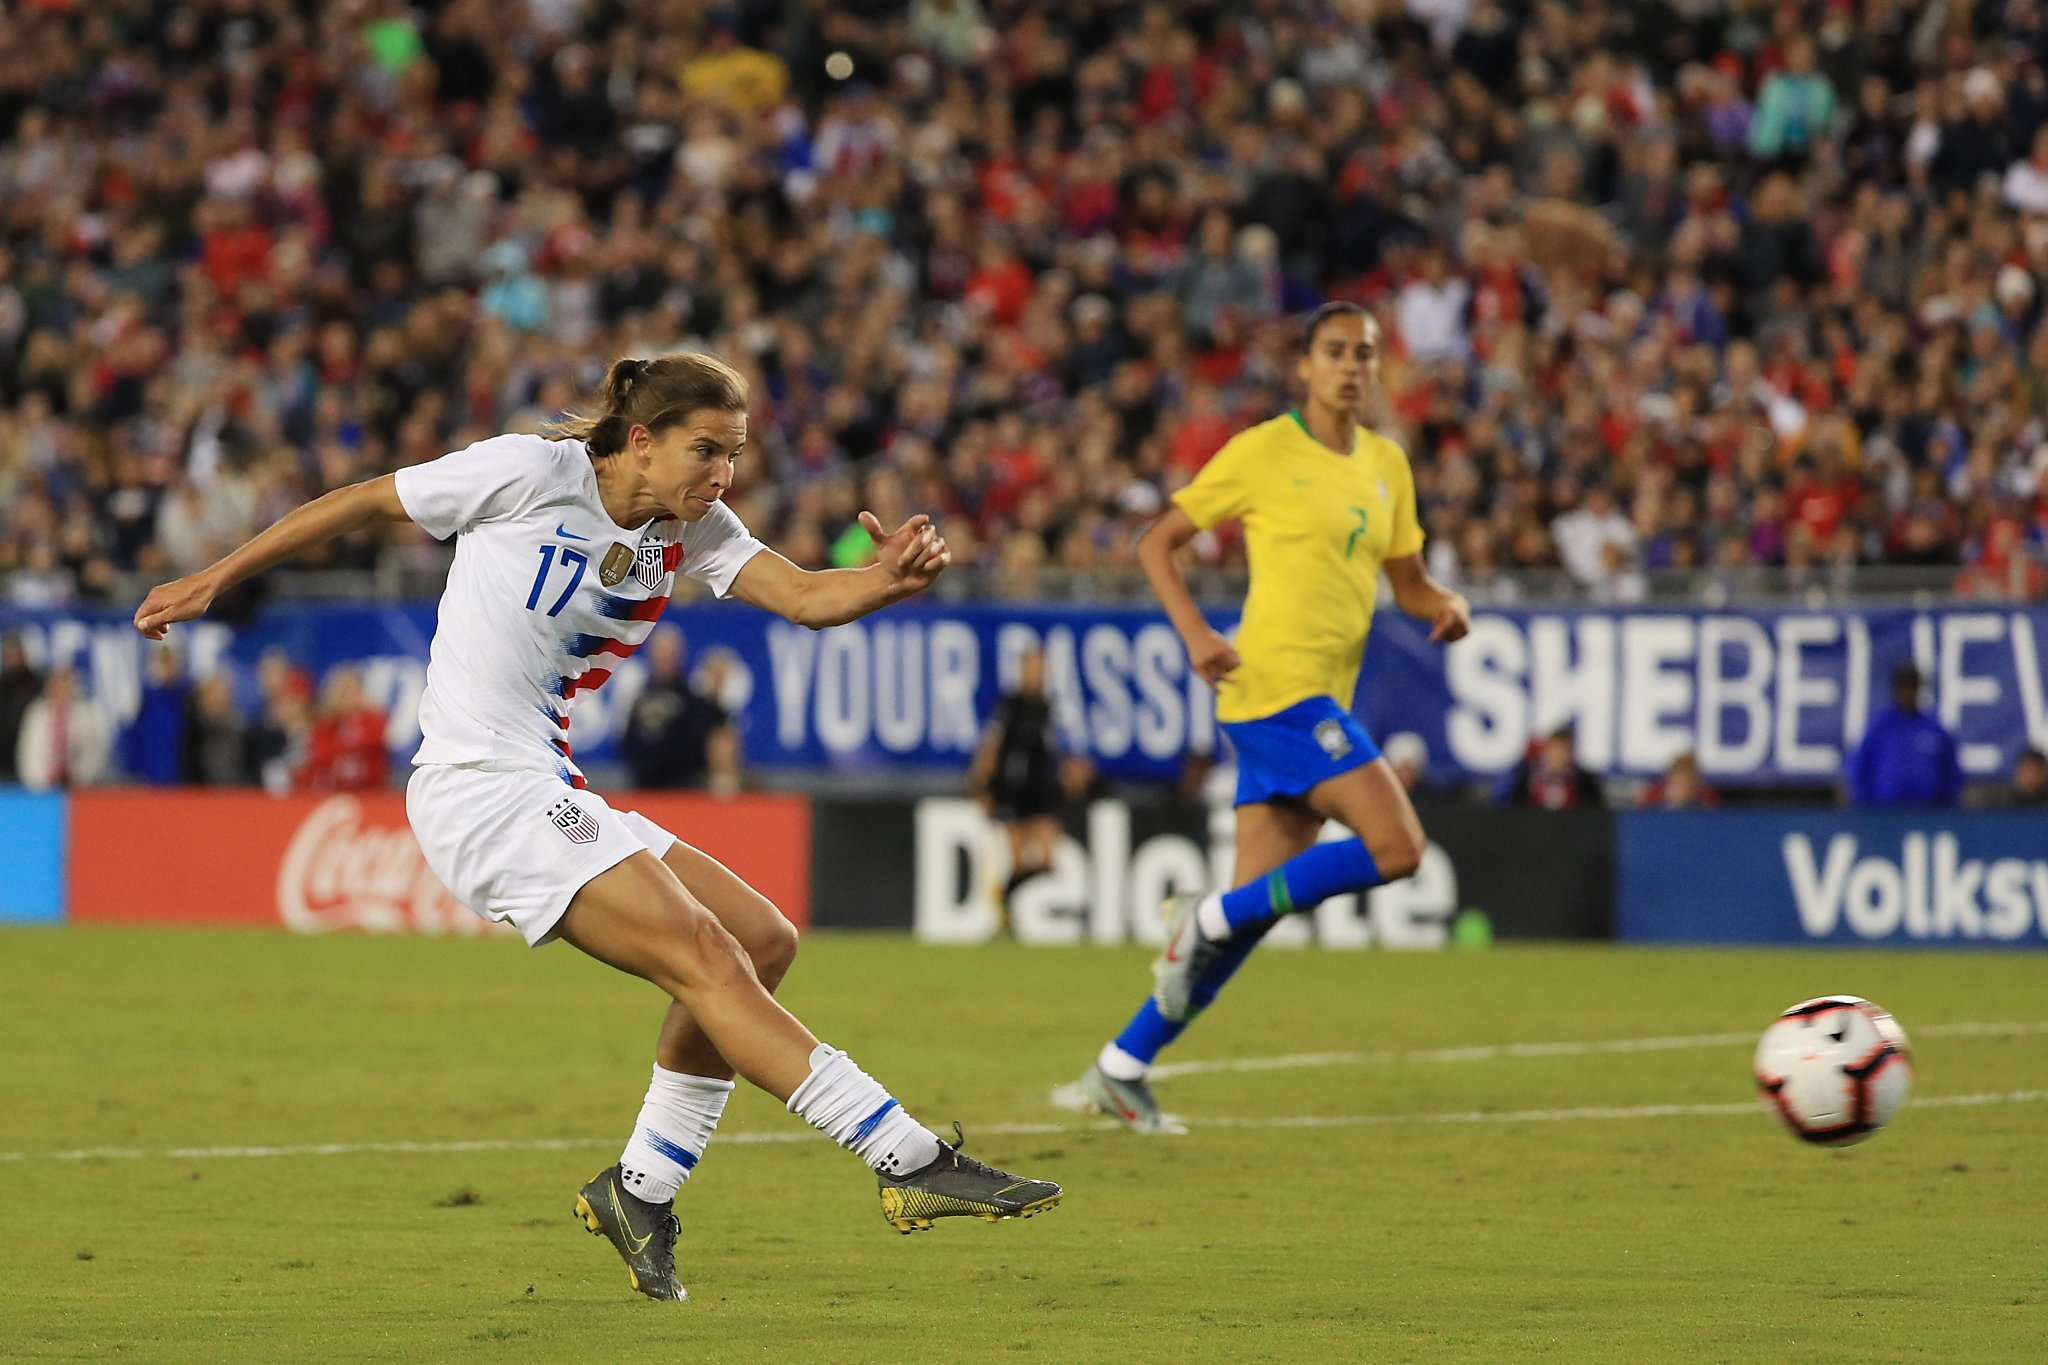 11b04738d20 Tobin Heath s goal gives U.S. 1-0 win over Brazil - SFGate